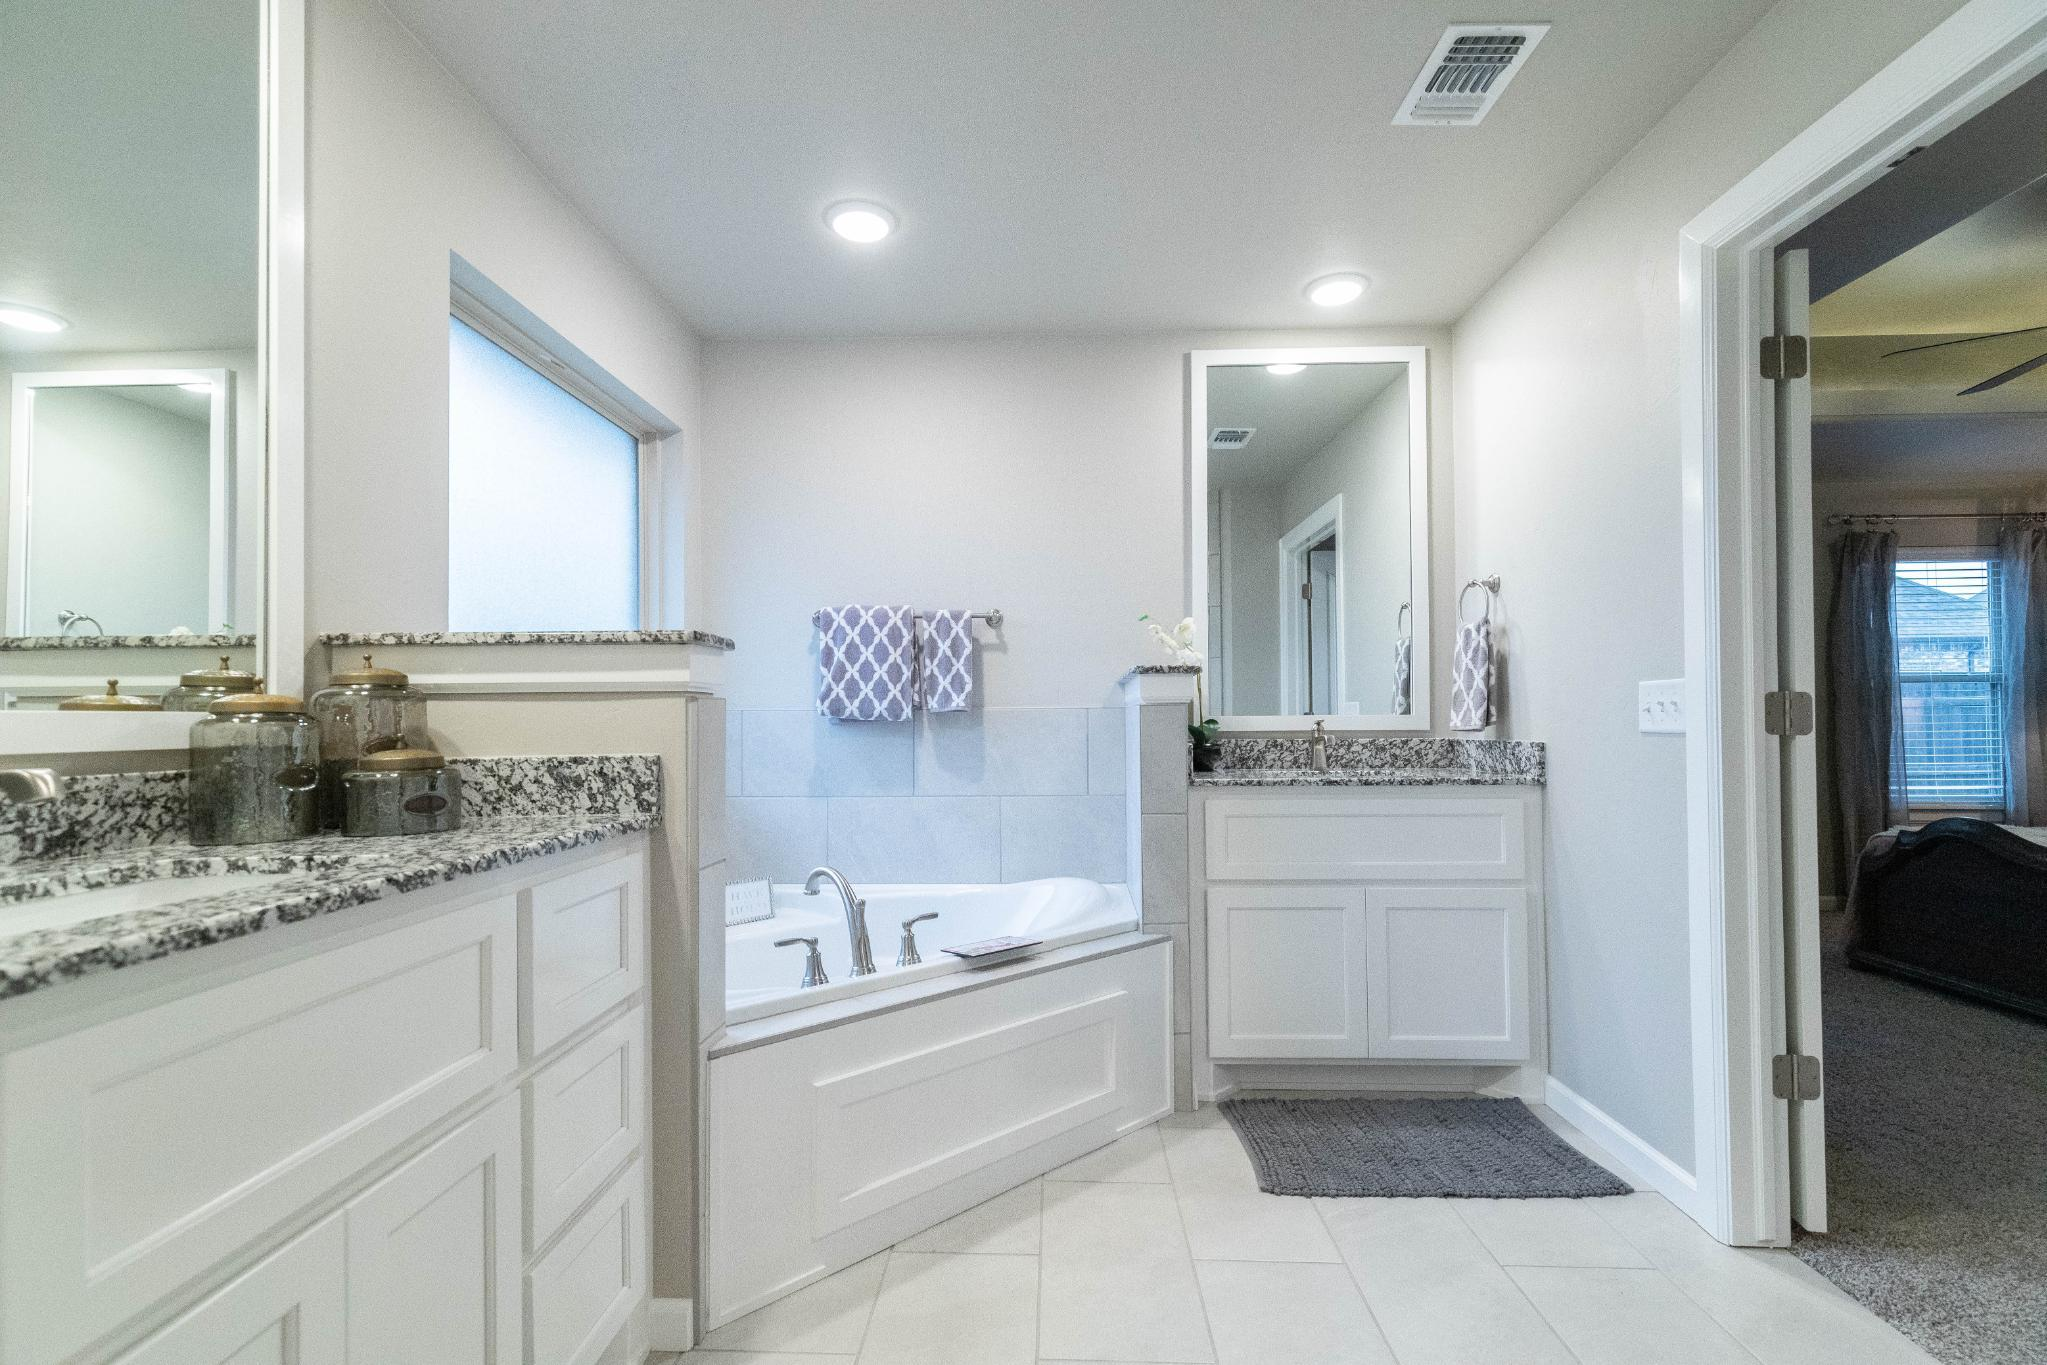 Bathroom featured in the Shiloh Bonus Room 2 By Homes By Taber in Oklahoma City, OK